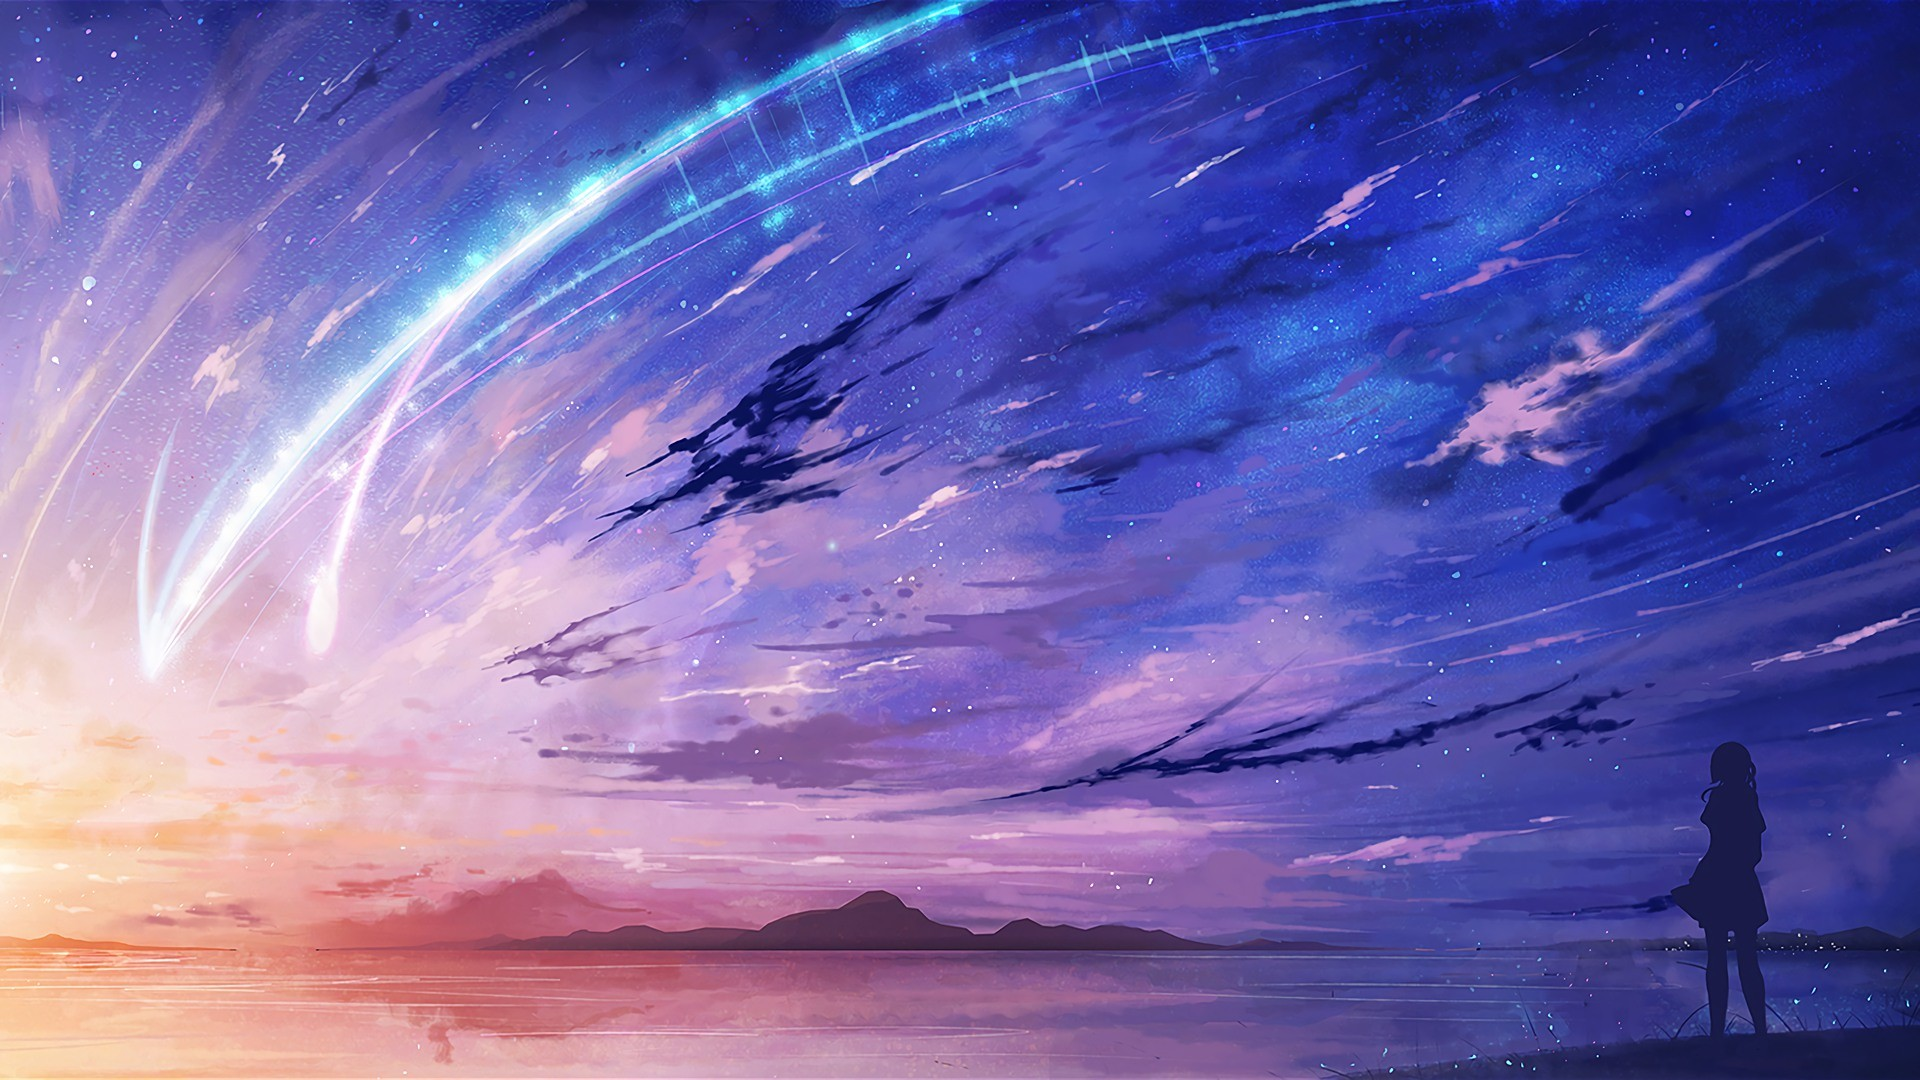 Anime scenery wallpaper 48 images - Anime background ...